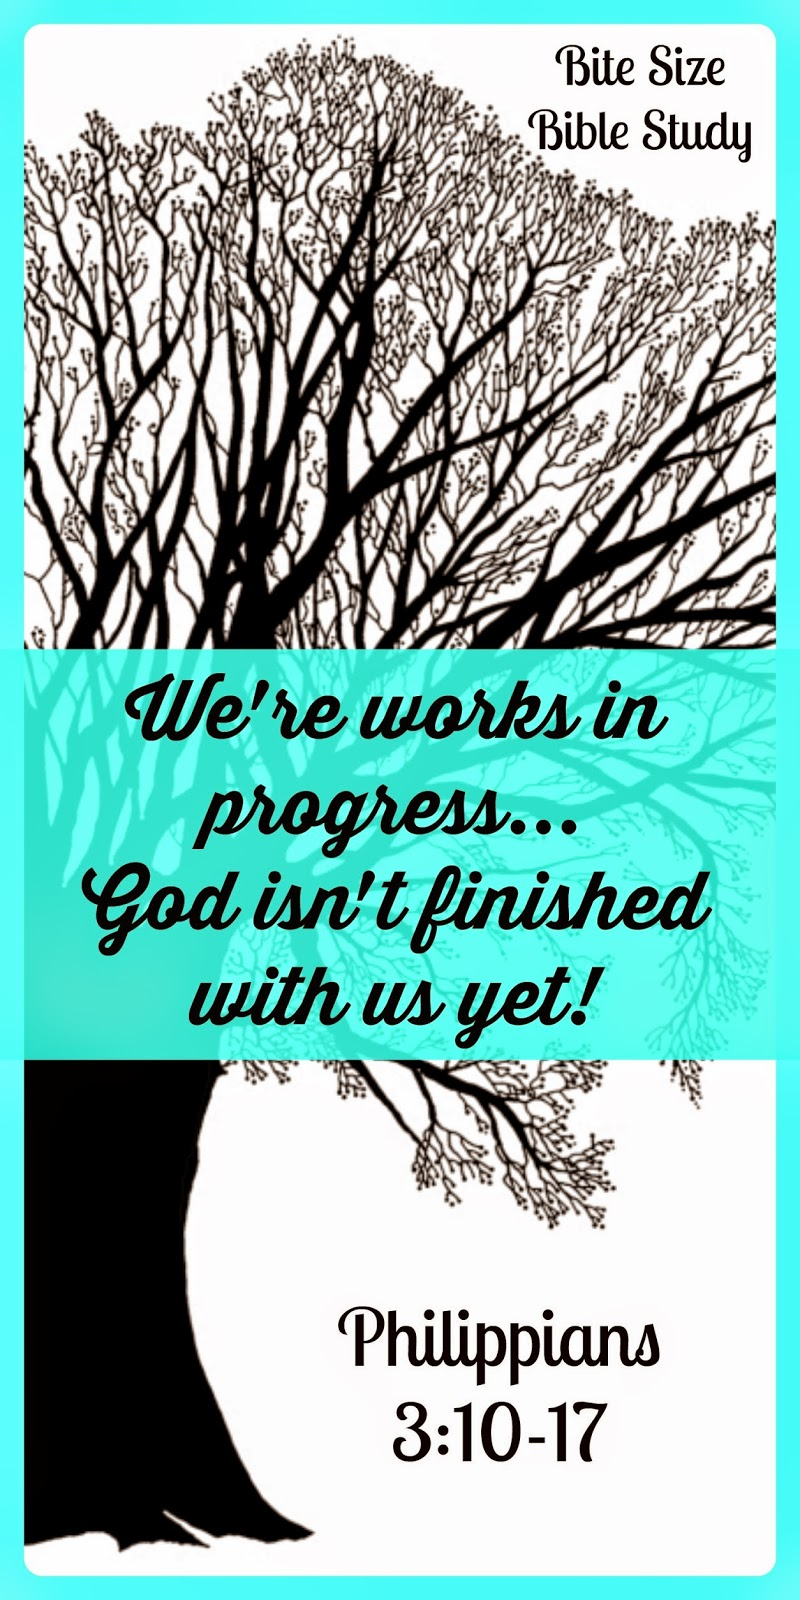 God isn't finished with us yet, Philippians 3:10-17, sanctification